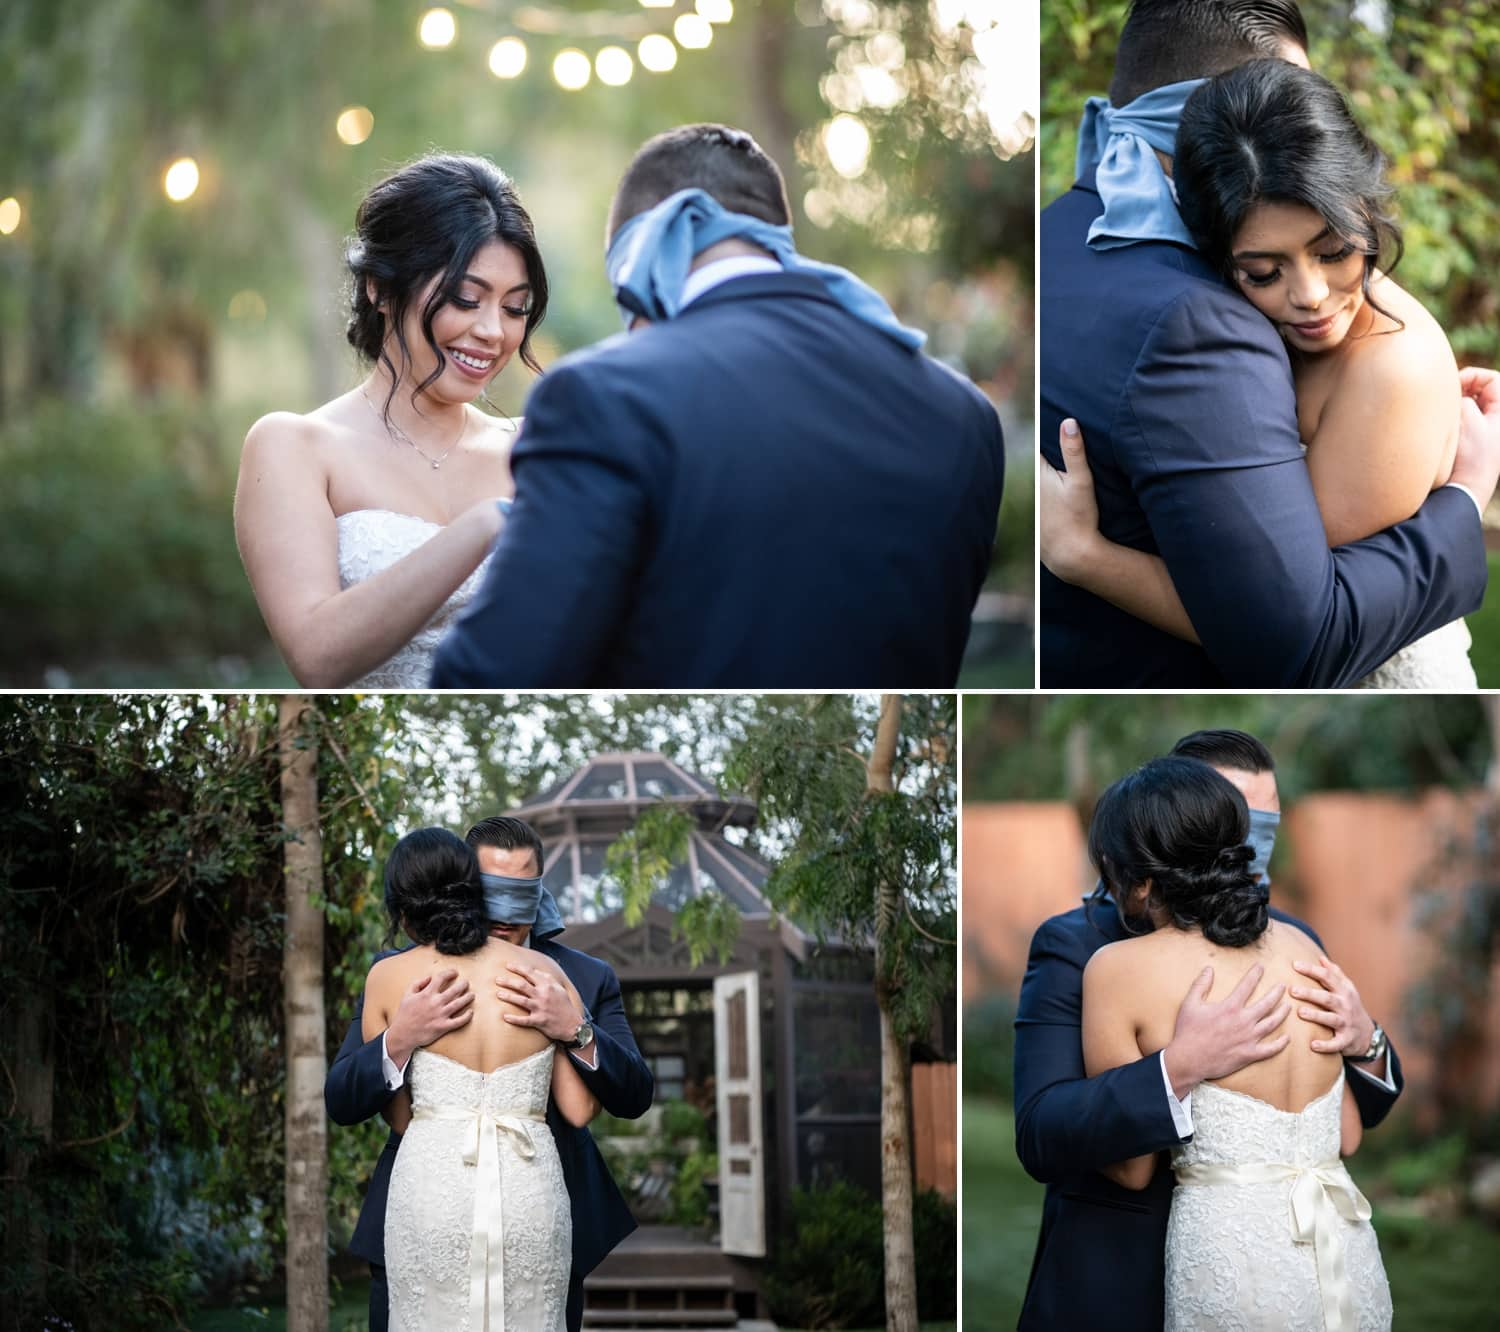 First look between bride and groom at Twin Oaks Gardens Wedding Venue.